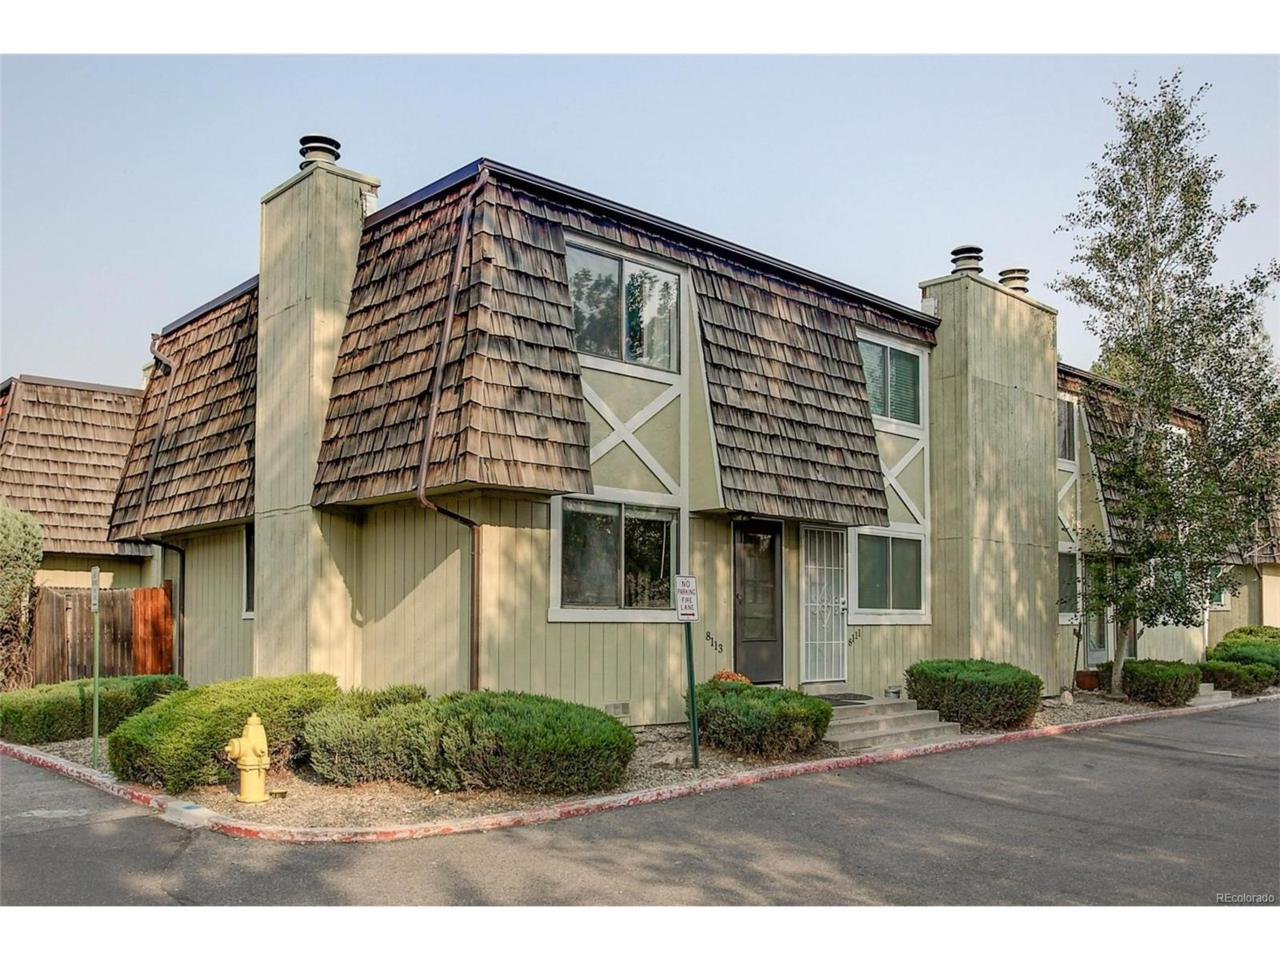 8113 W 54th Place #8, Arvada, CO 80002 (MLS #9275572) :: 8z Real Estate